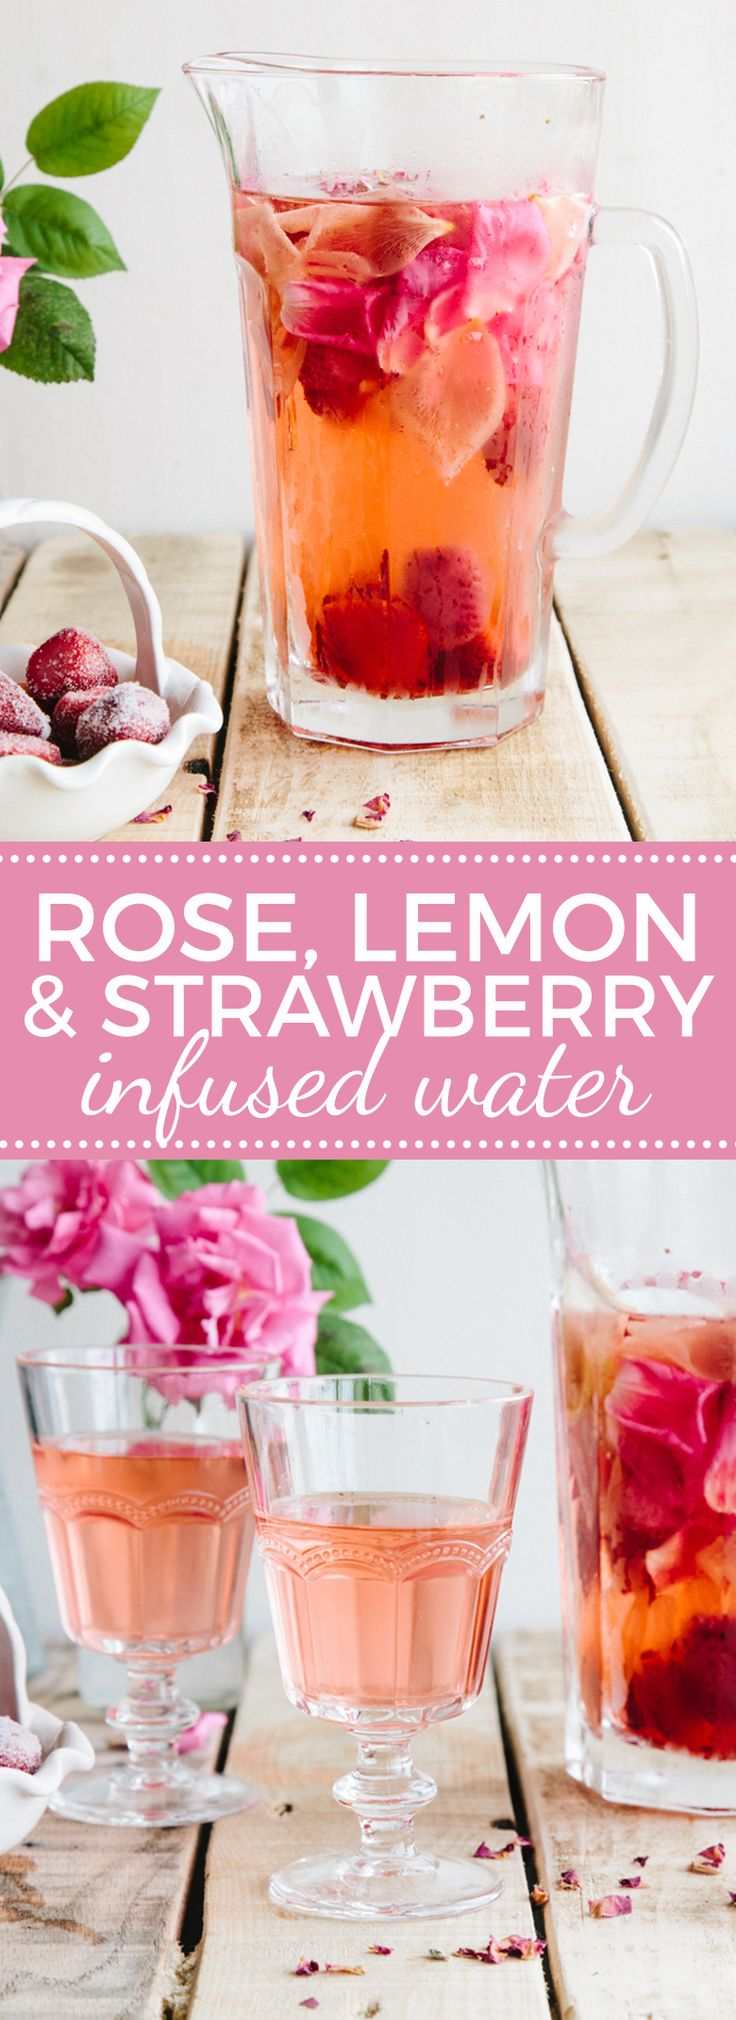 Rose, Lemon & Strawberry Infused Water                                                                                                                                                     More